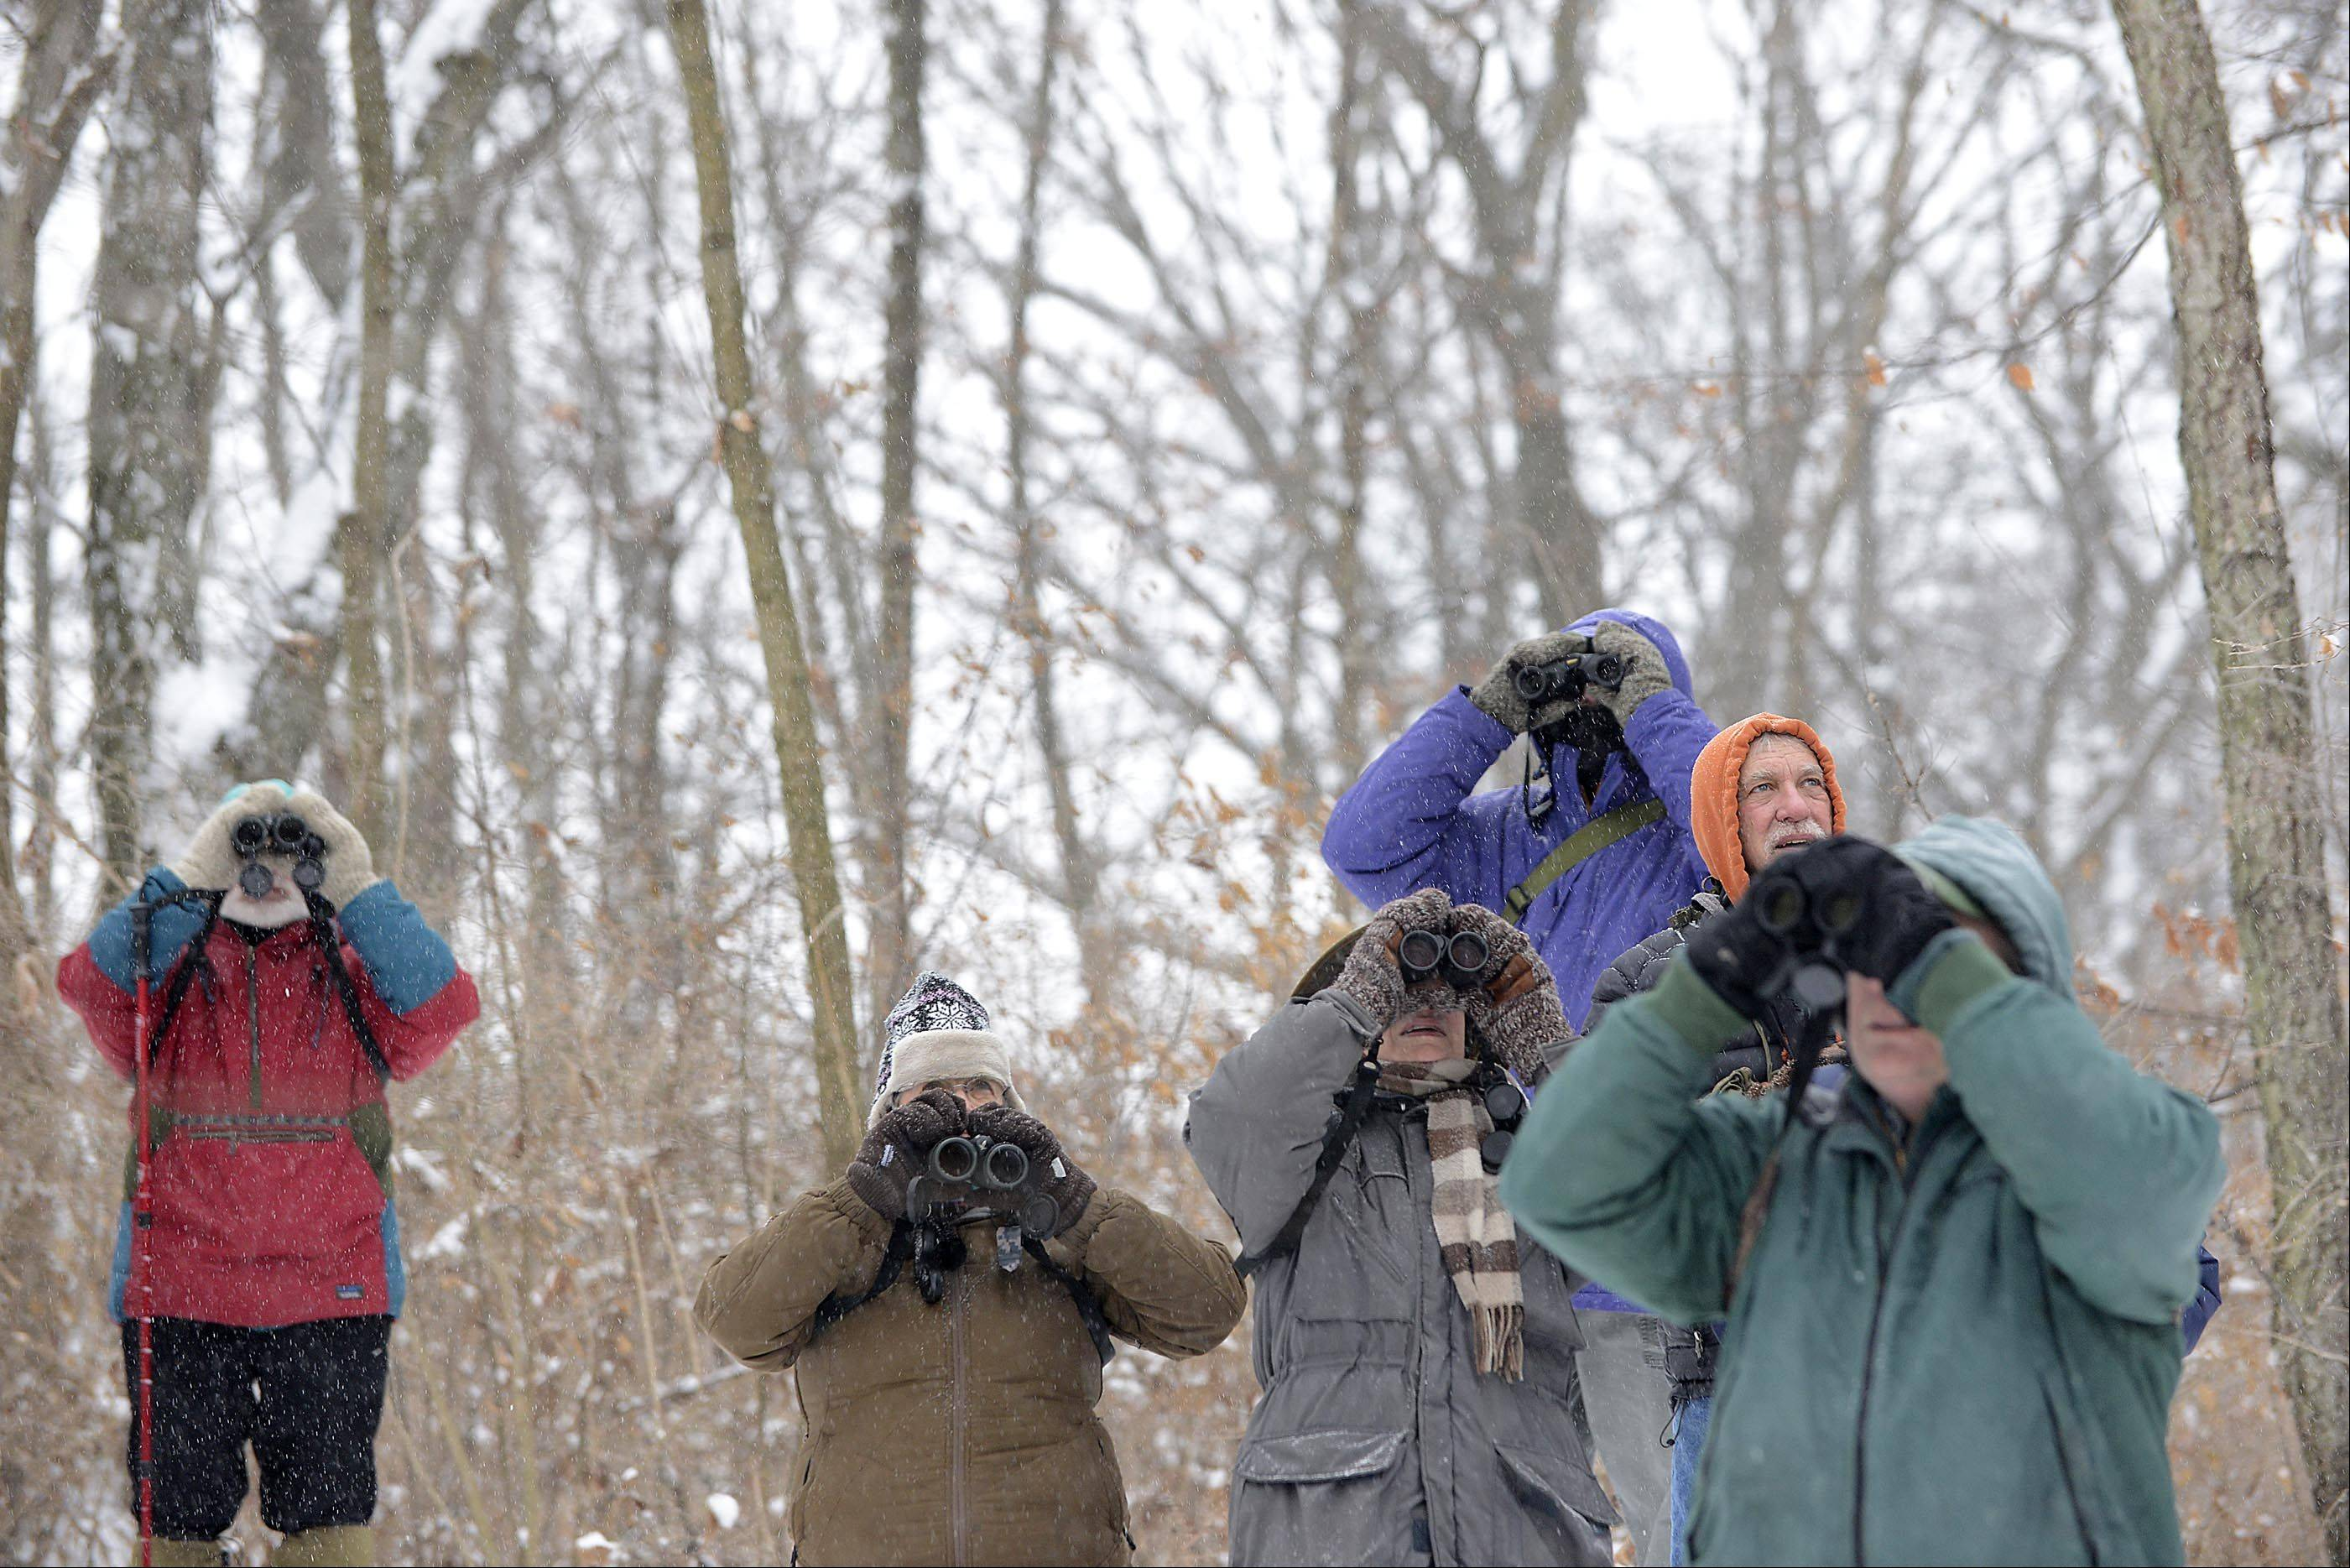 Binoculars were the tool of choice as bird enthuiasts took their annual walk through the Nelson Lake/Dick Young Forest Preserve in Batavia to start the new year.